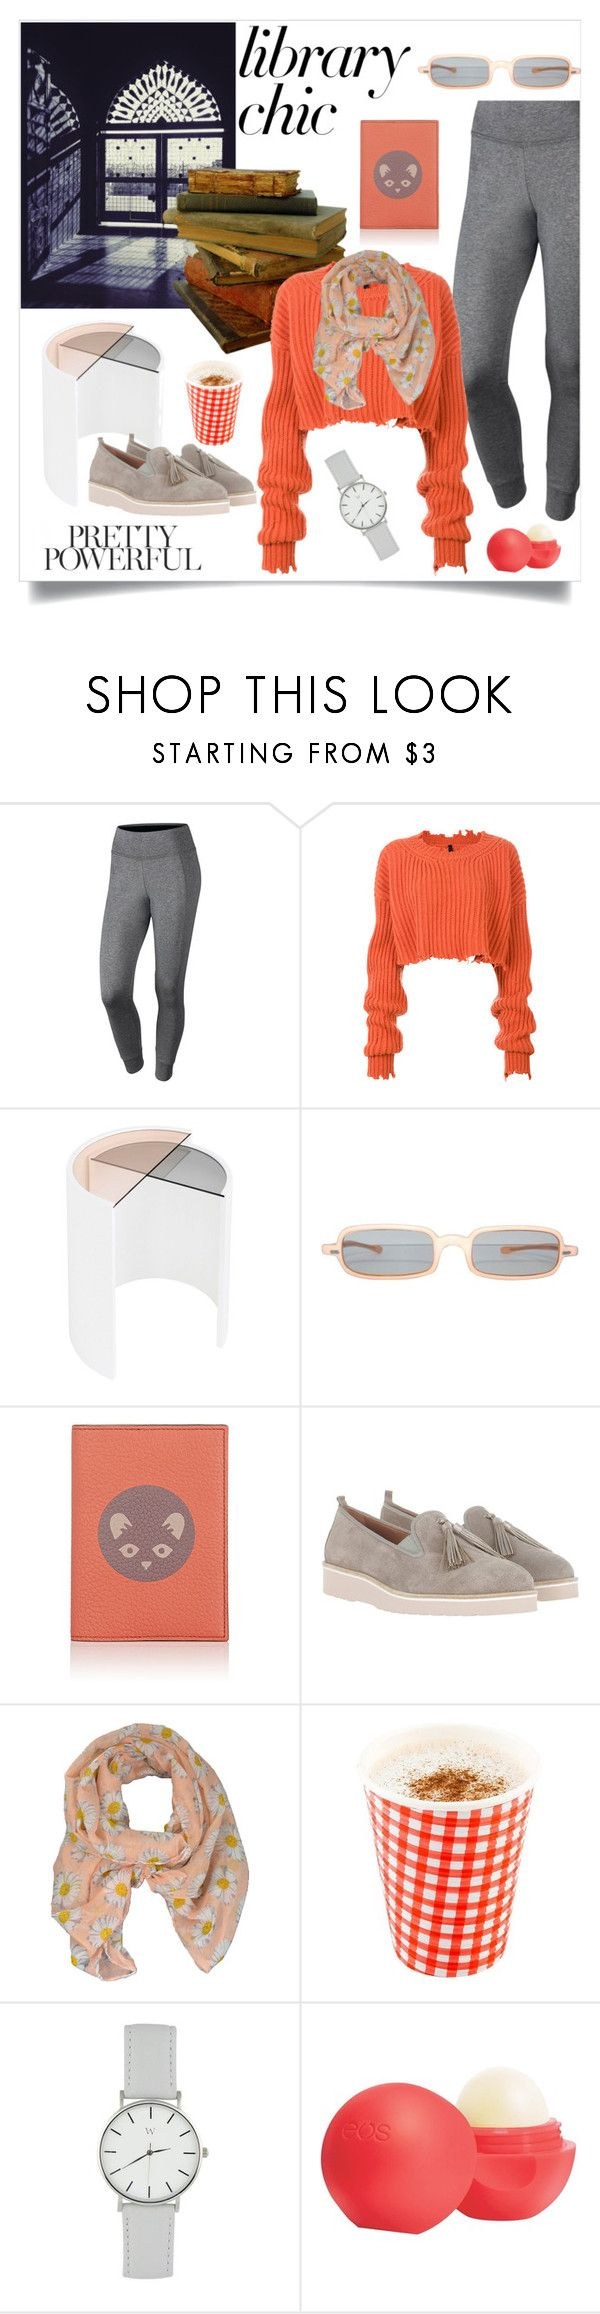 """""""Study Session: Library Chic"""" by freida-adams ❤ liked on Polyvore featuring NIKE, Unravel, Bower, Homers, LA77 and Eos"""